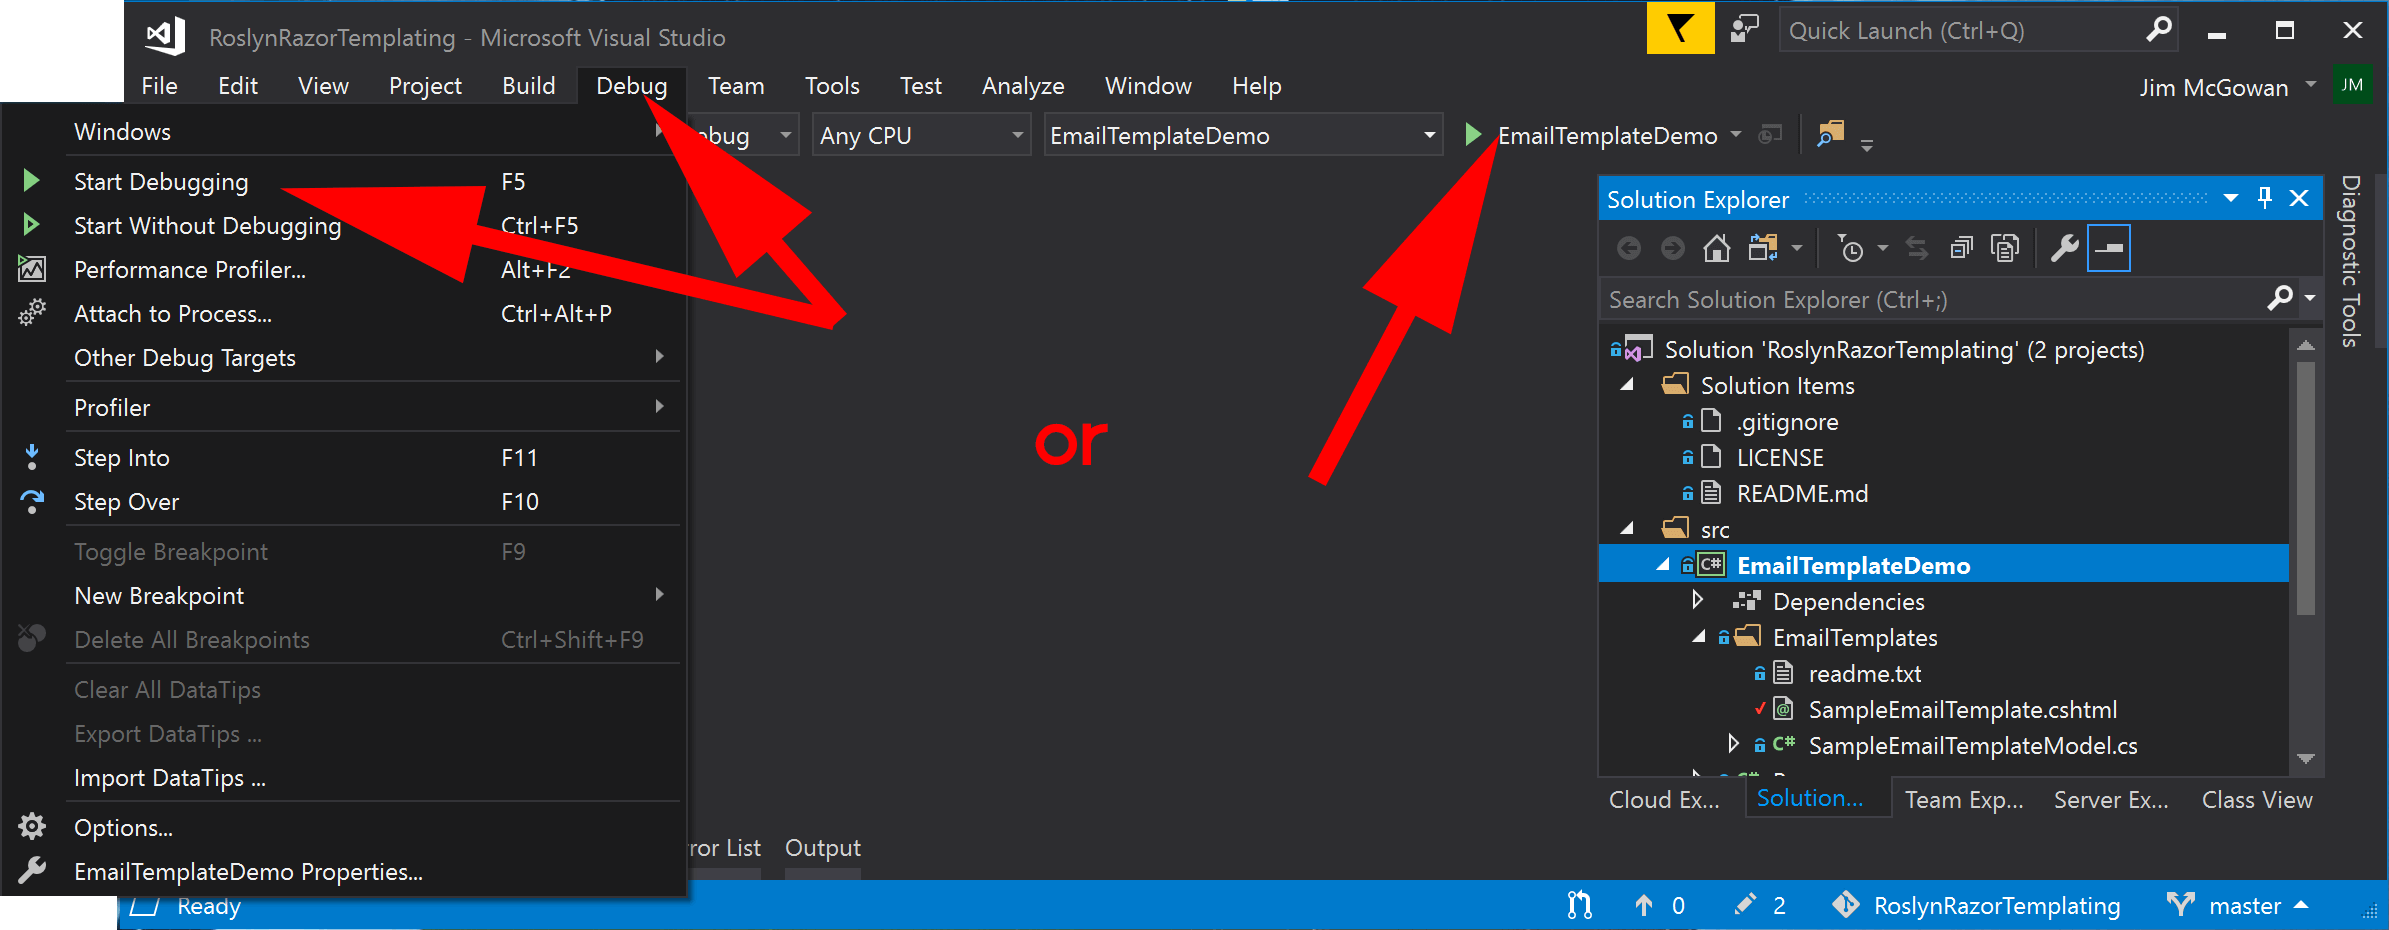 image showing how to start debugger